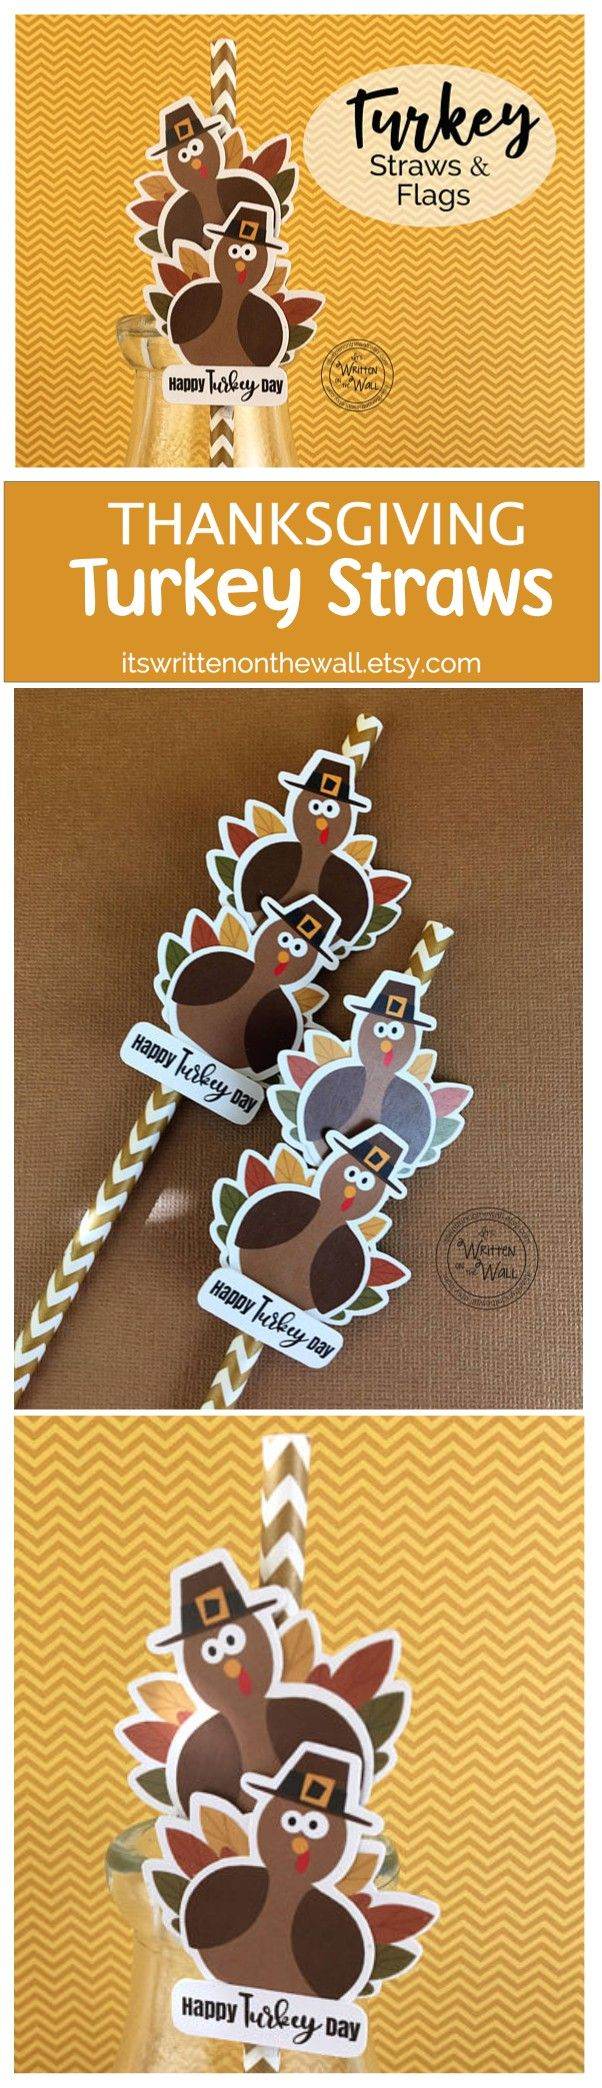 Thanksgiving Turkey Straw Flags for kids and adults table, Turkey Straws, Straws for Thanksgiving, Kids Straws, Happy Turkey Day